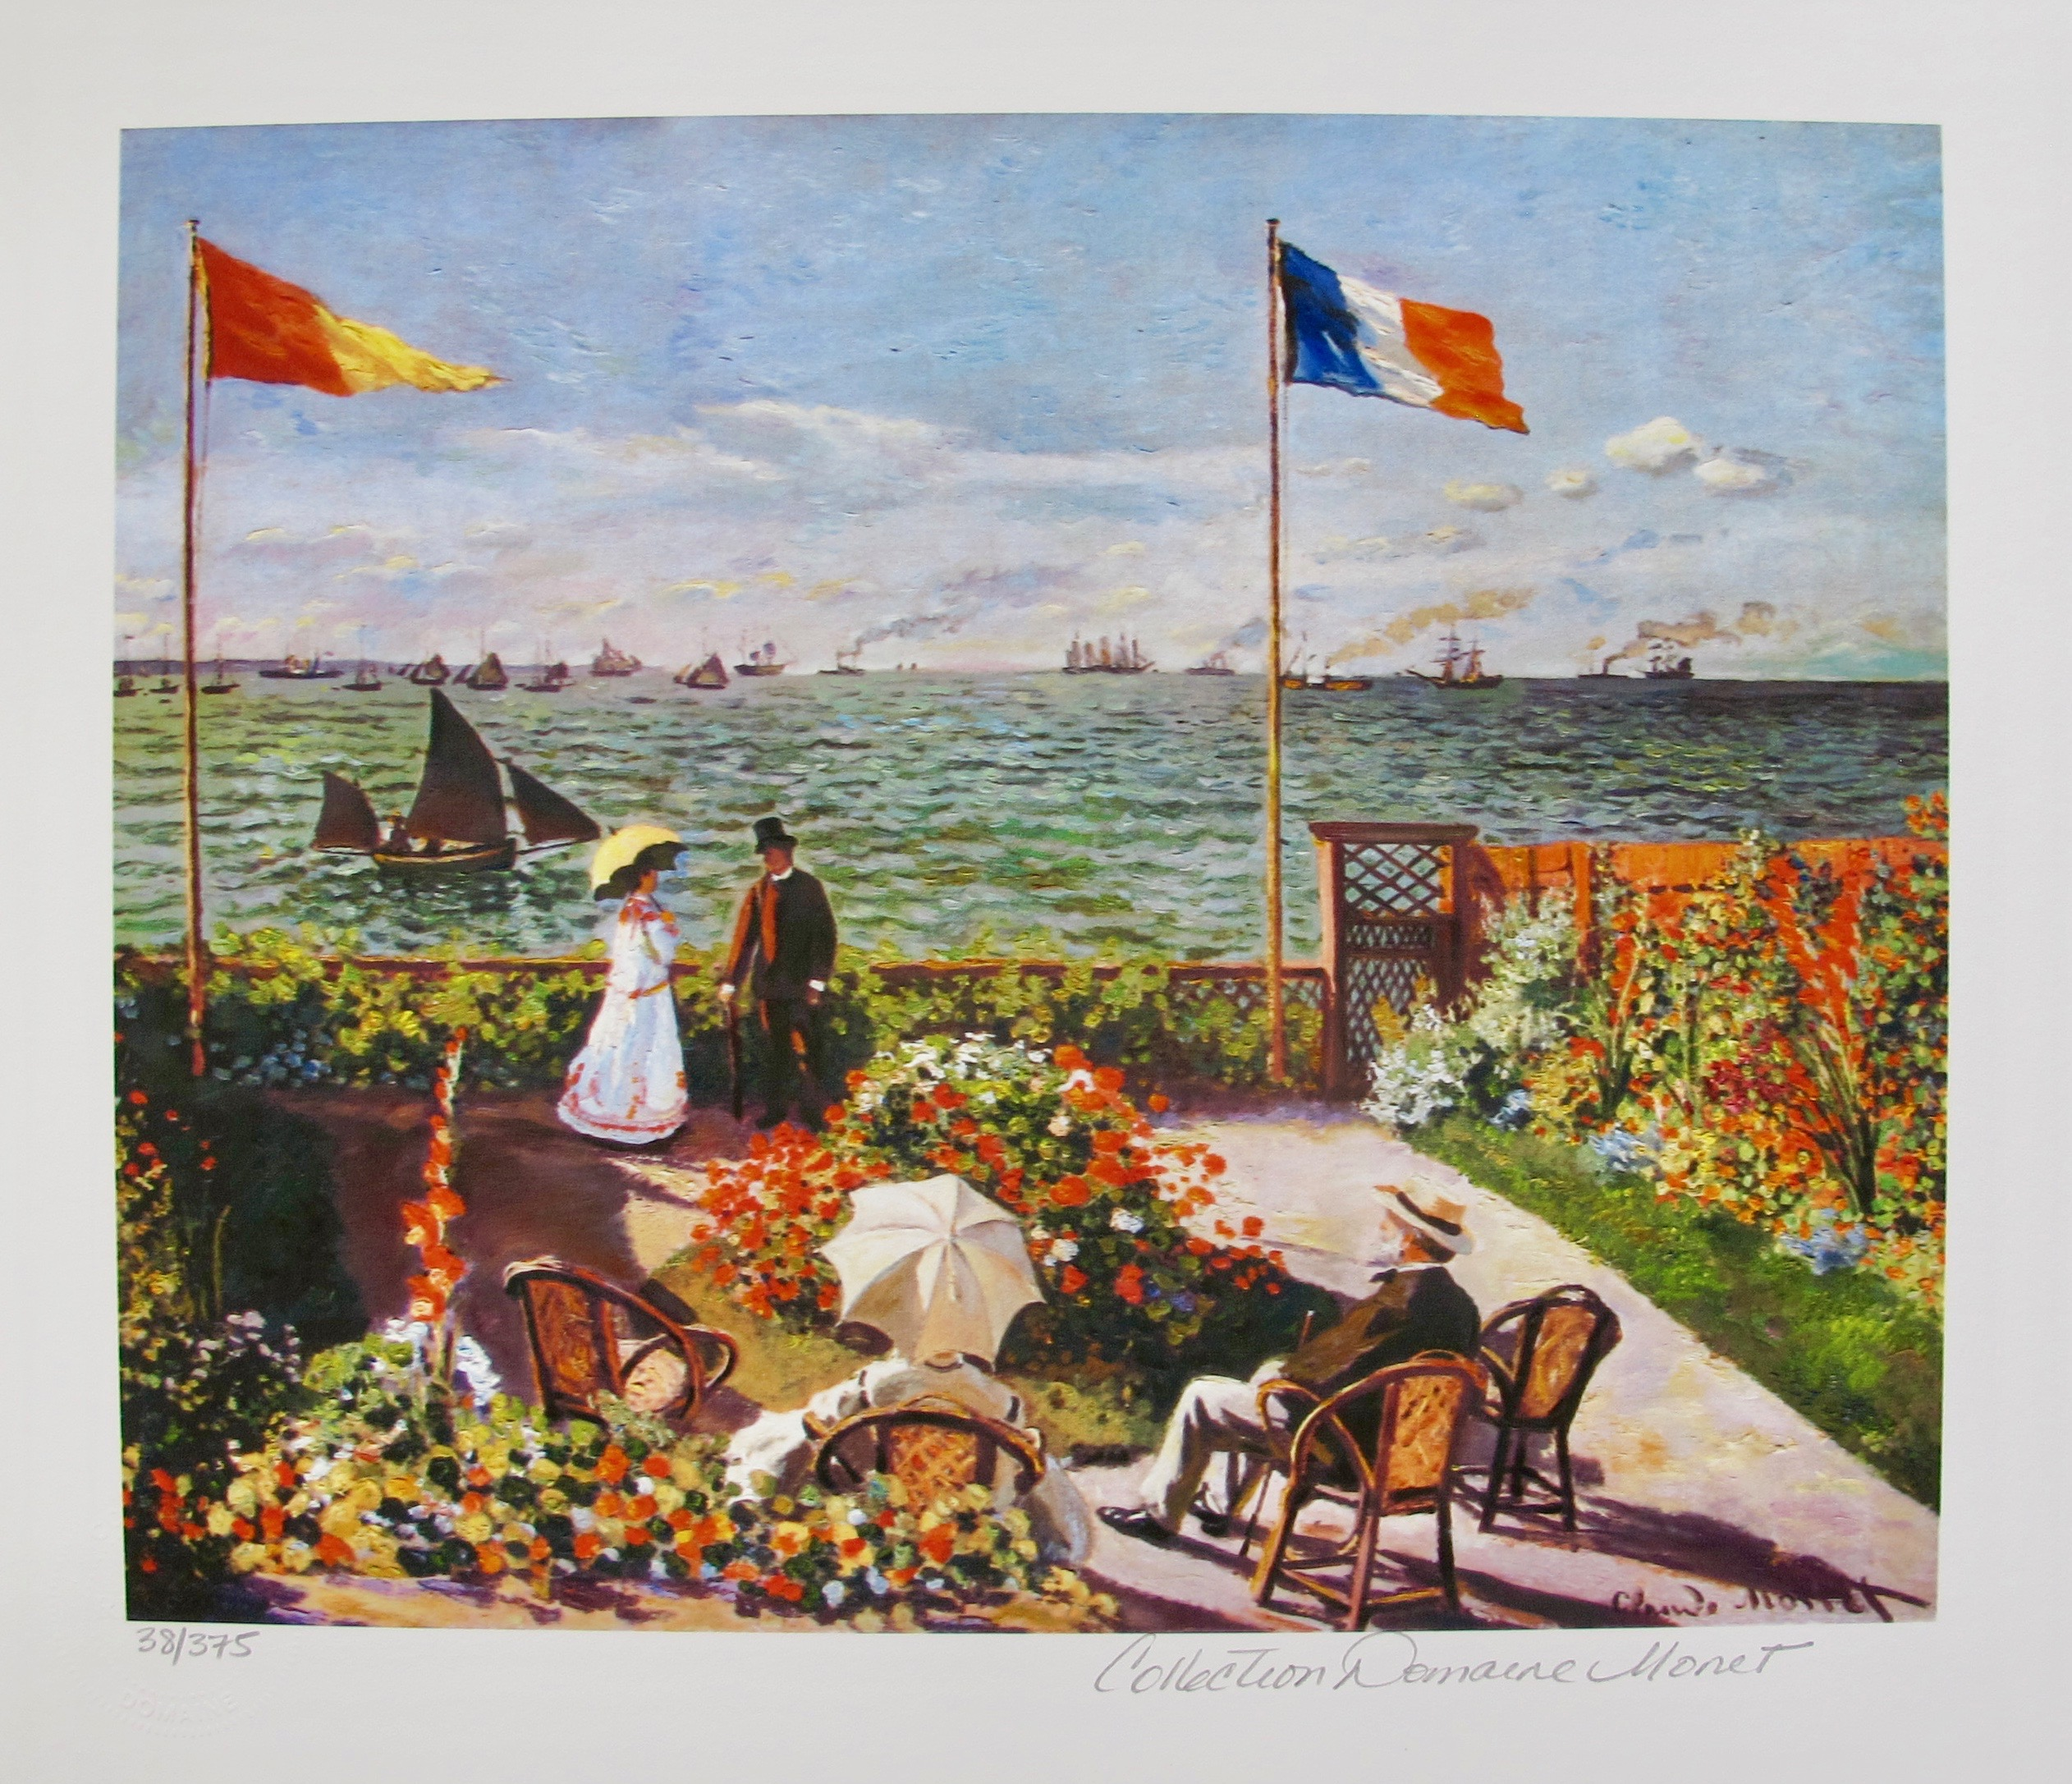 Claude Monet TERRACE BY THE SEASIDE Estate Signed & Stamped Limited Edition Small Giclee